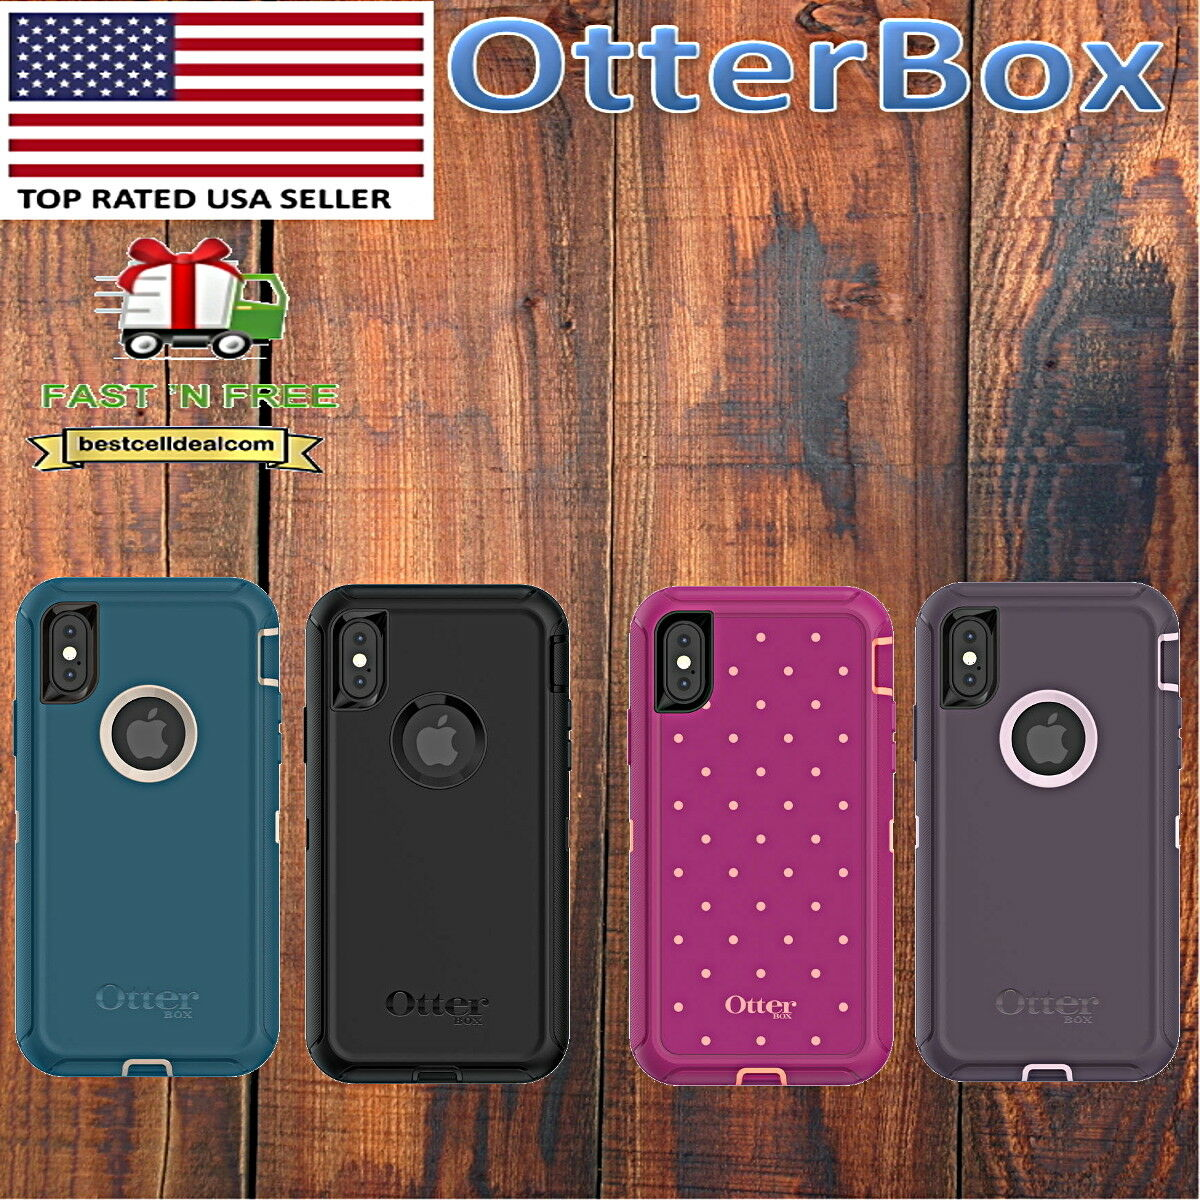 Otterbox Defender Case Cover For Apple Iphone X 10 Blue Black Pink Commuter Purple 1 Of 2free Shipping